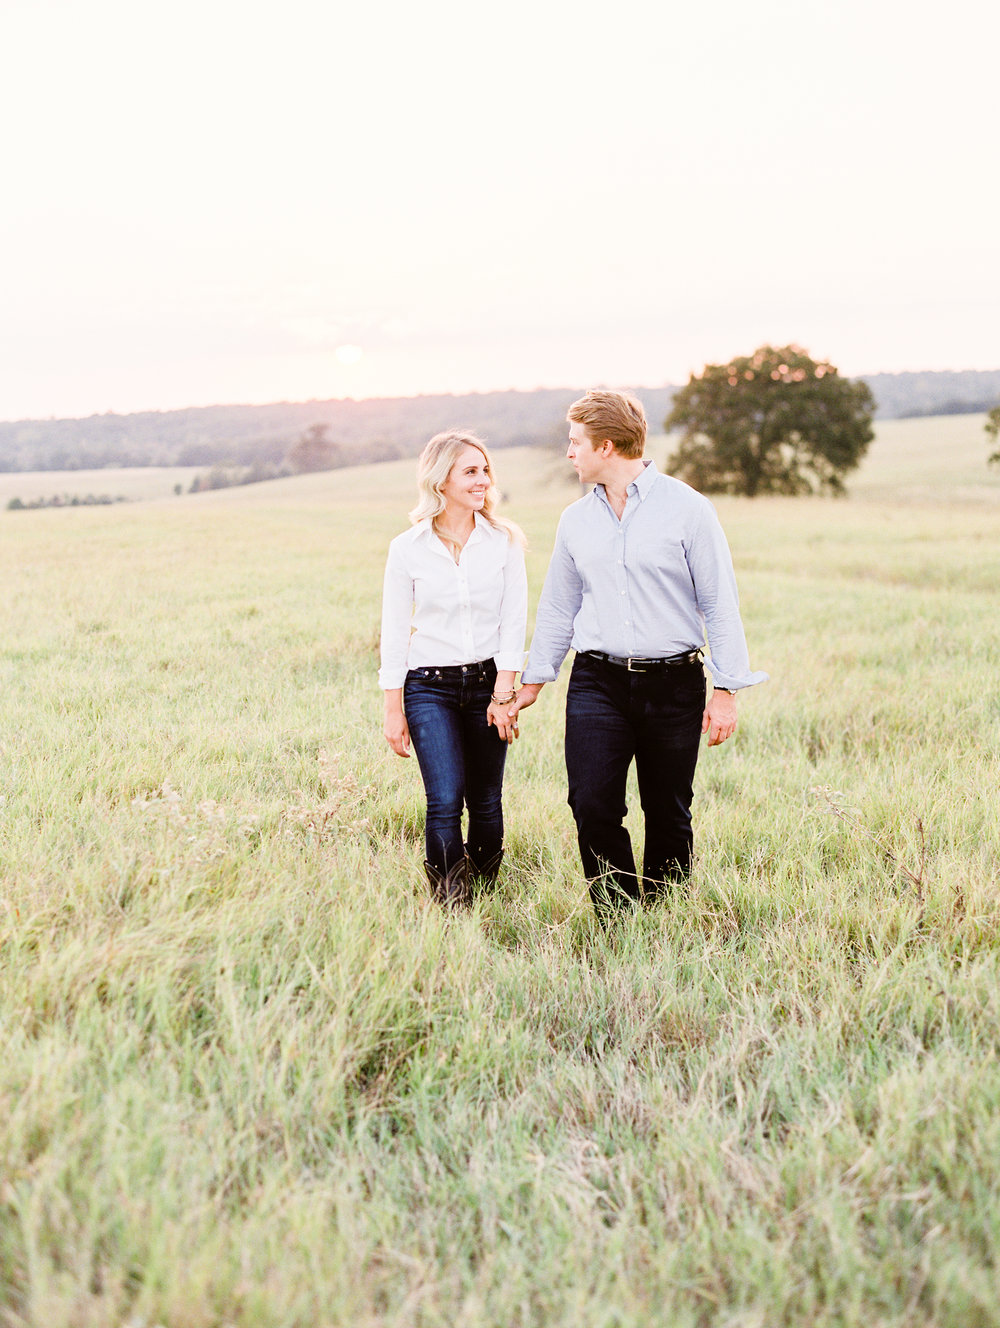 Lauren+John+Engaged+TX-121.jpg